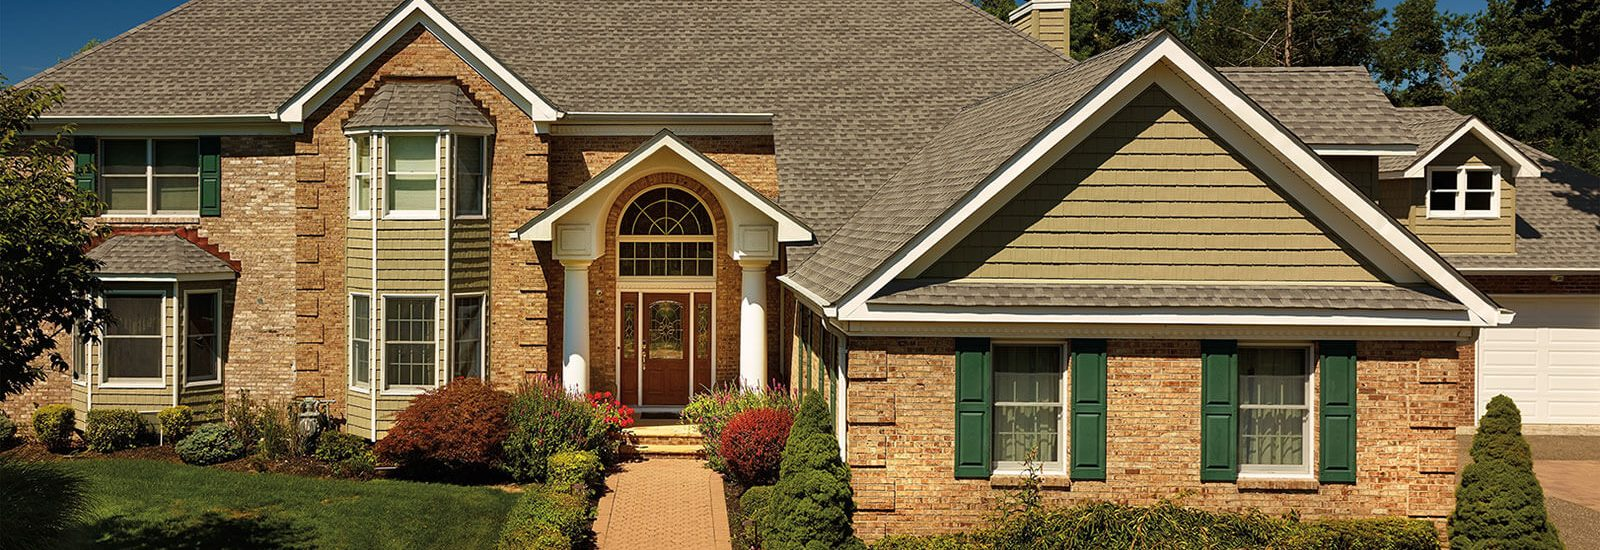 quality roofing services in glastonbury ct